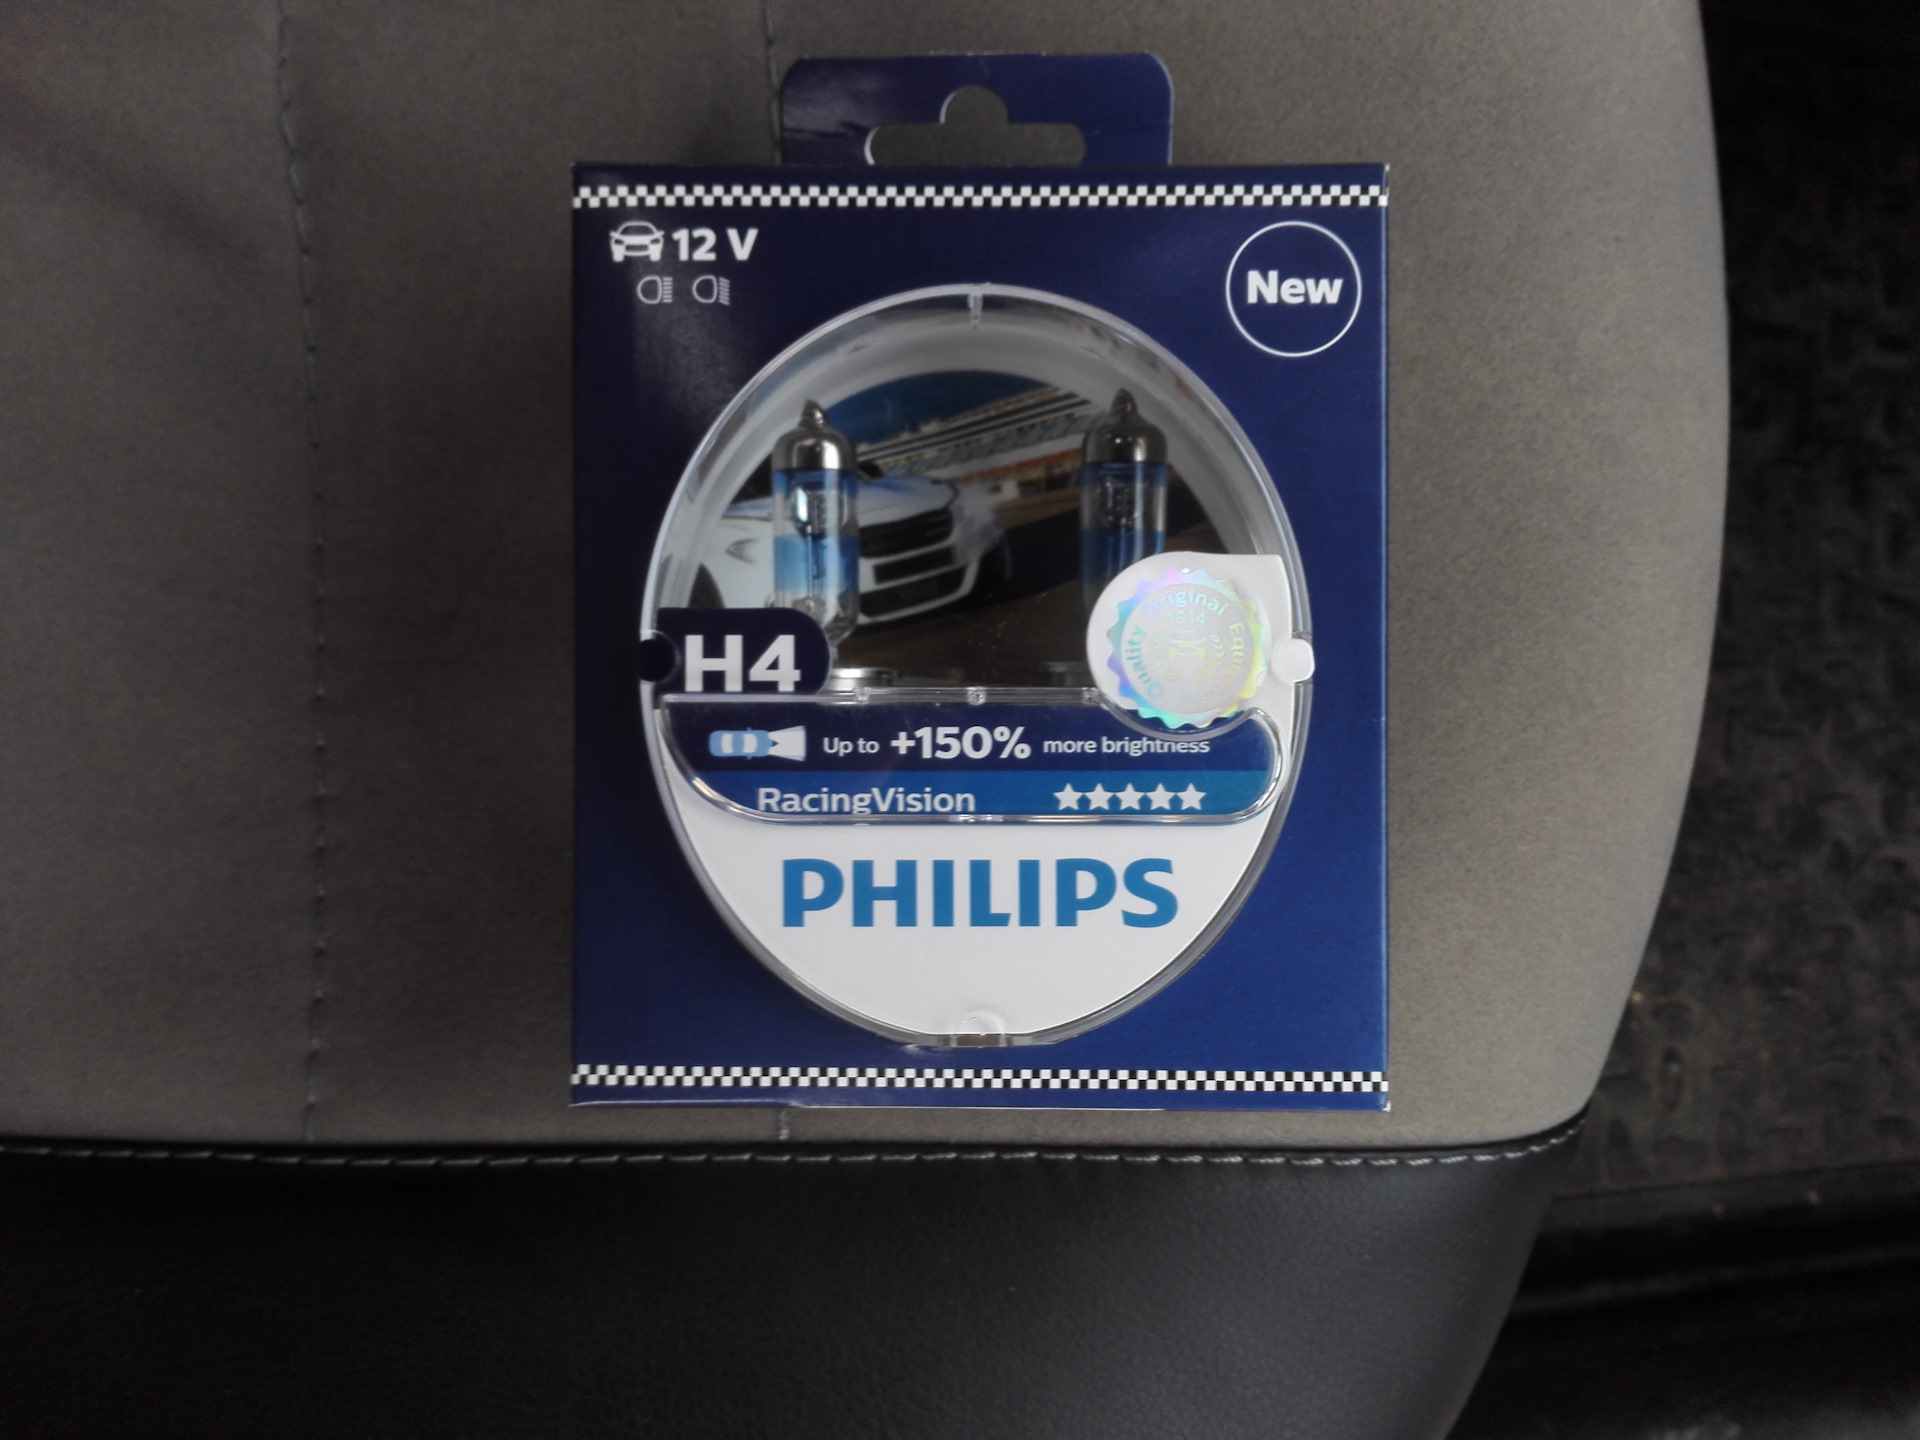 philips racing vision 150 h4 review and comparison. Black Bedroom Furniture Sets. Home Design Ideas